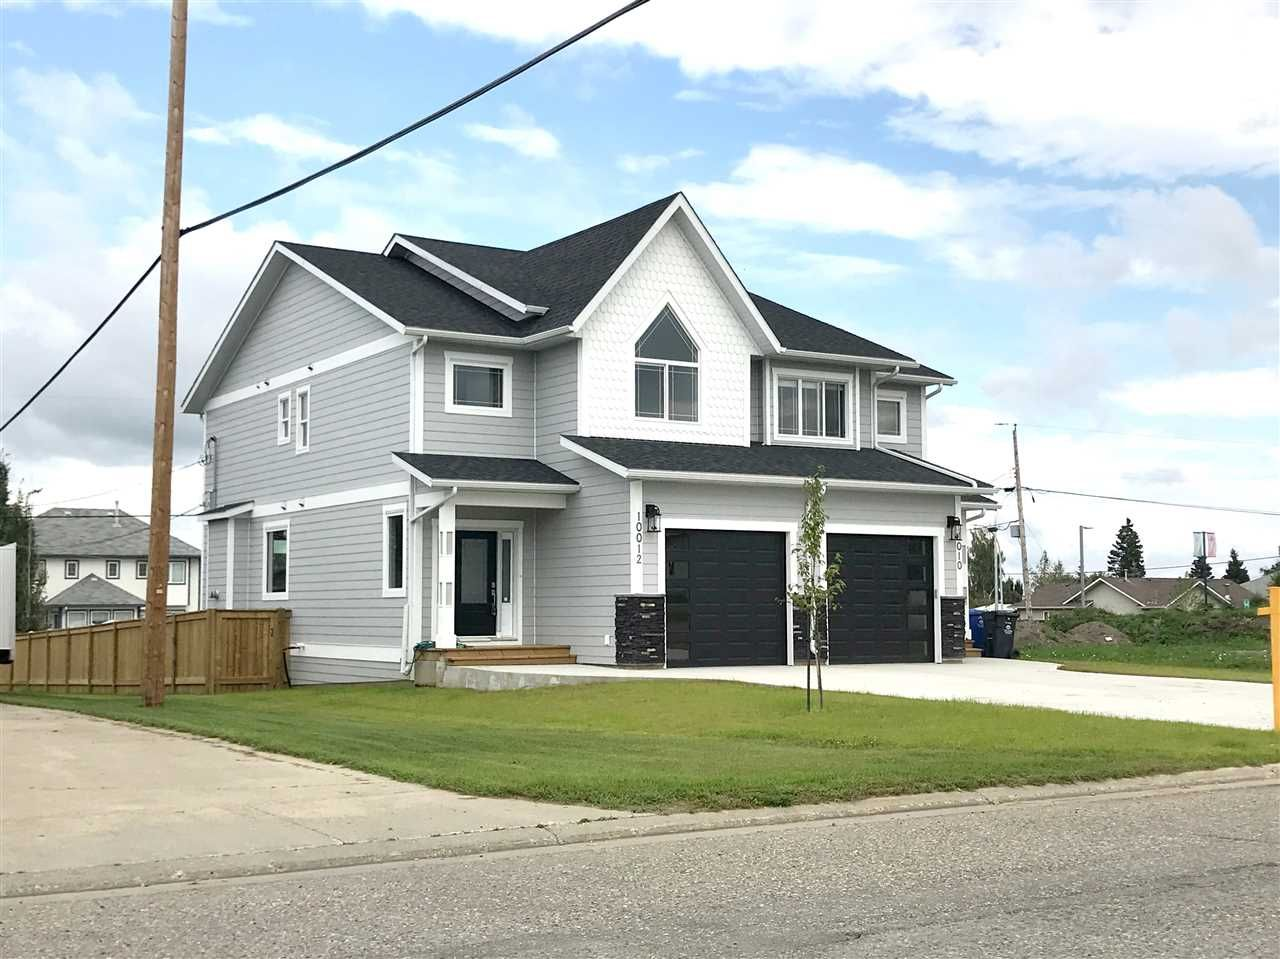 Main Photo: 10012 111 AVENUE in : Fort St. John - City NW 1/2 Duplex for sale : MLS®# R2244375